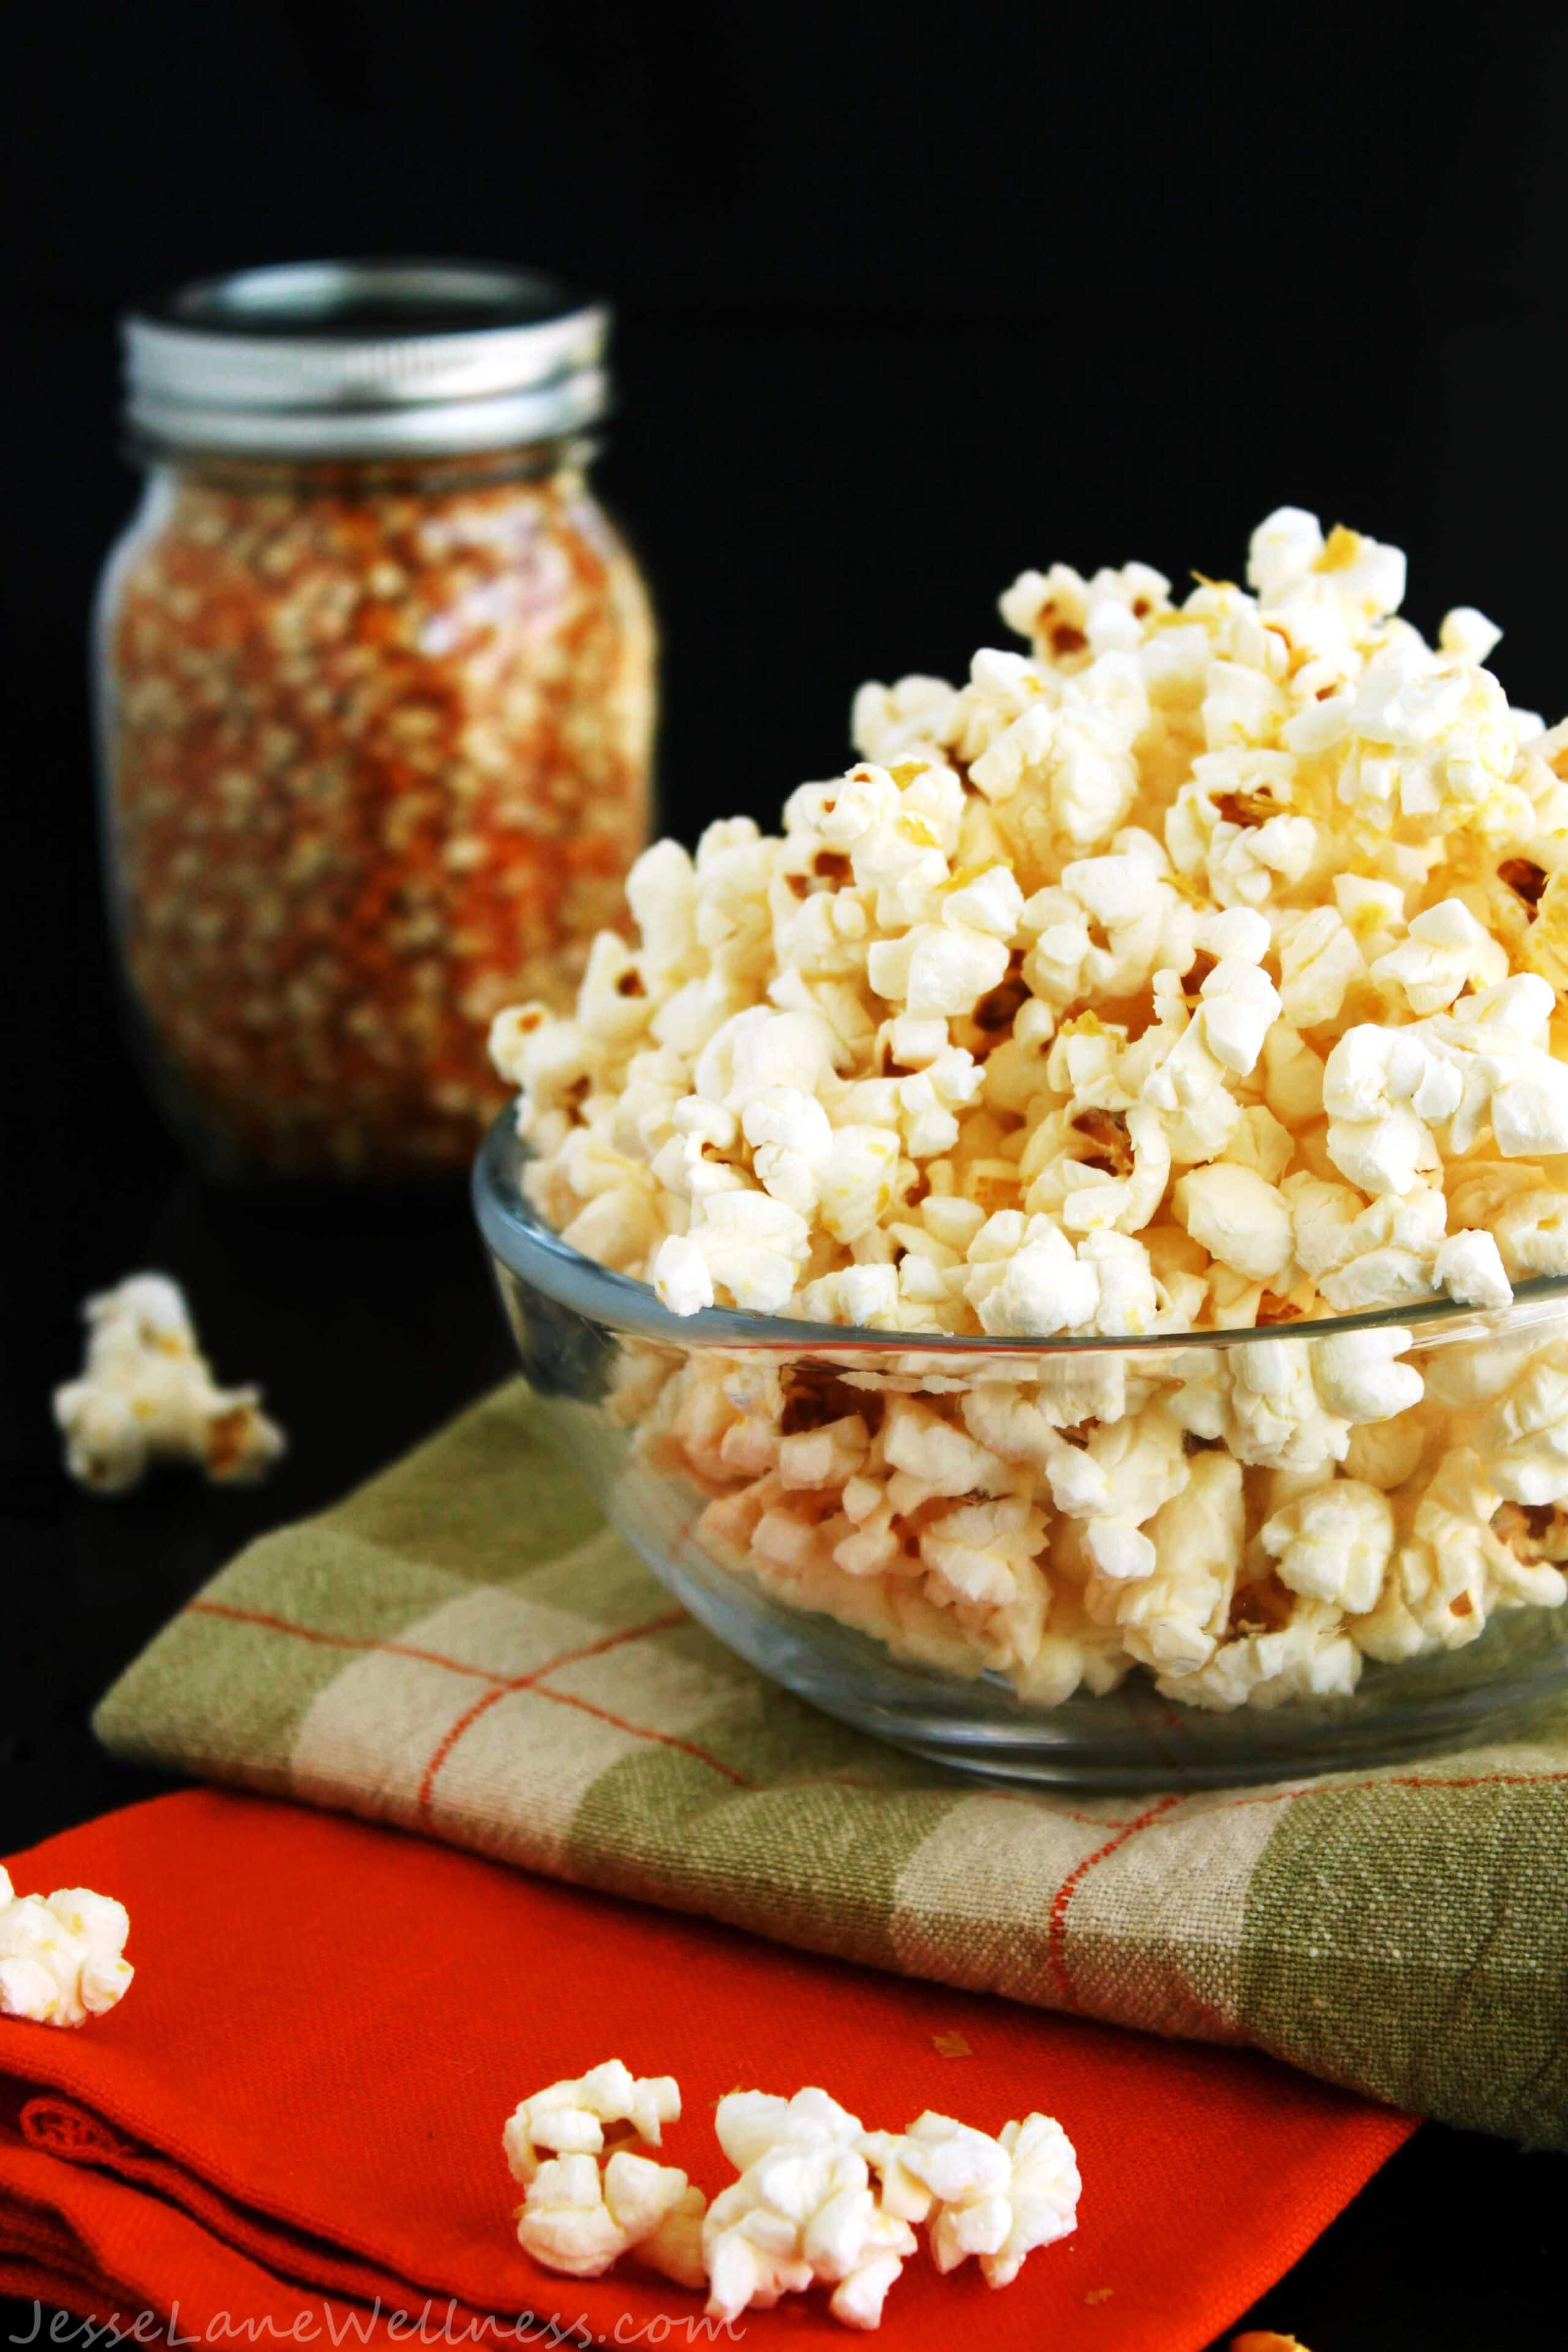 Cheesy Popcorn by @JesseLWellness #vegan #popcorn